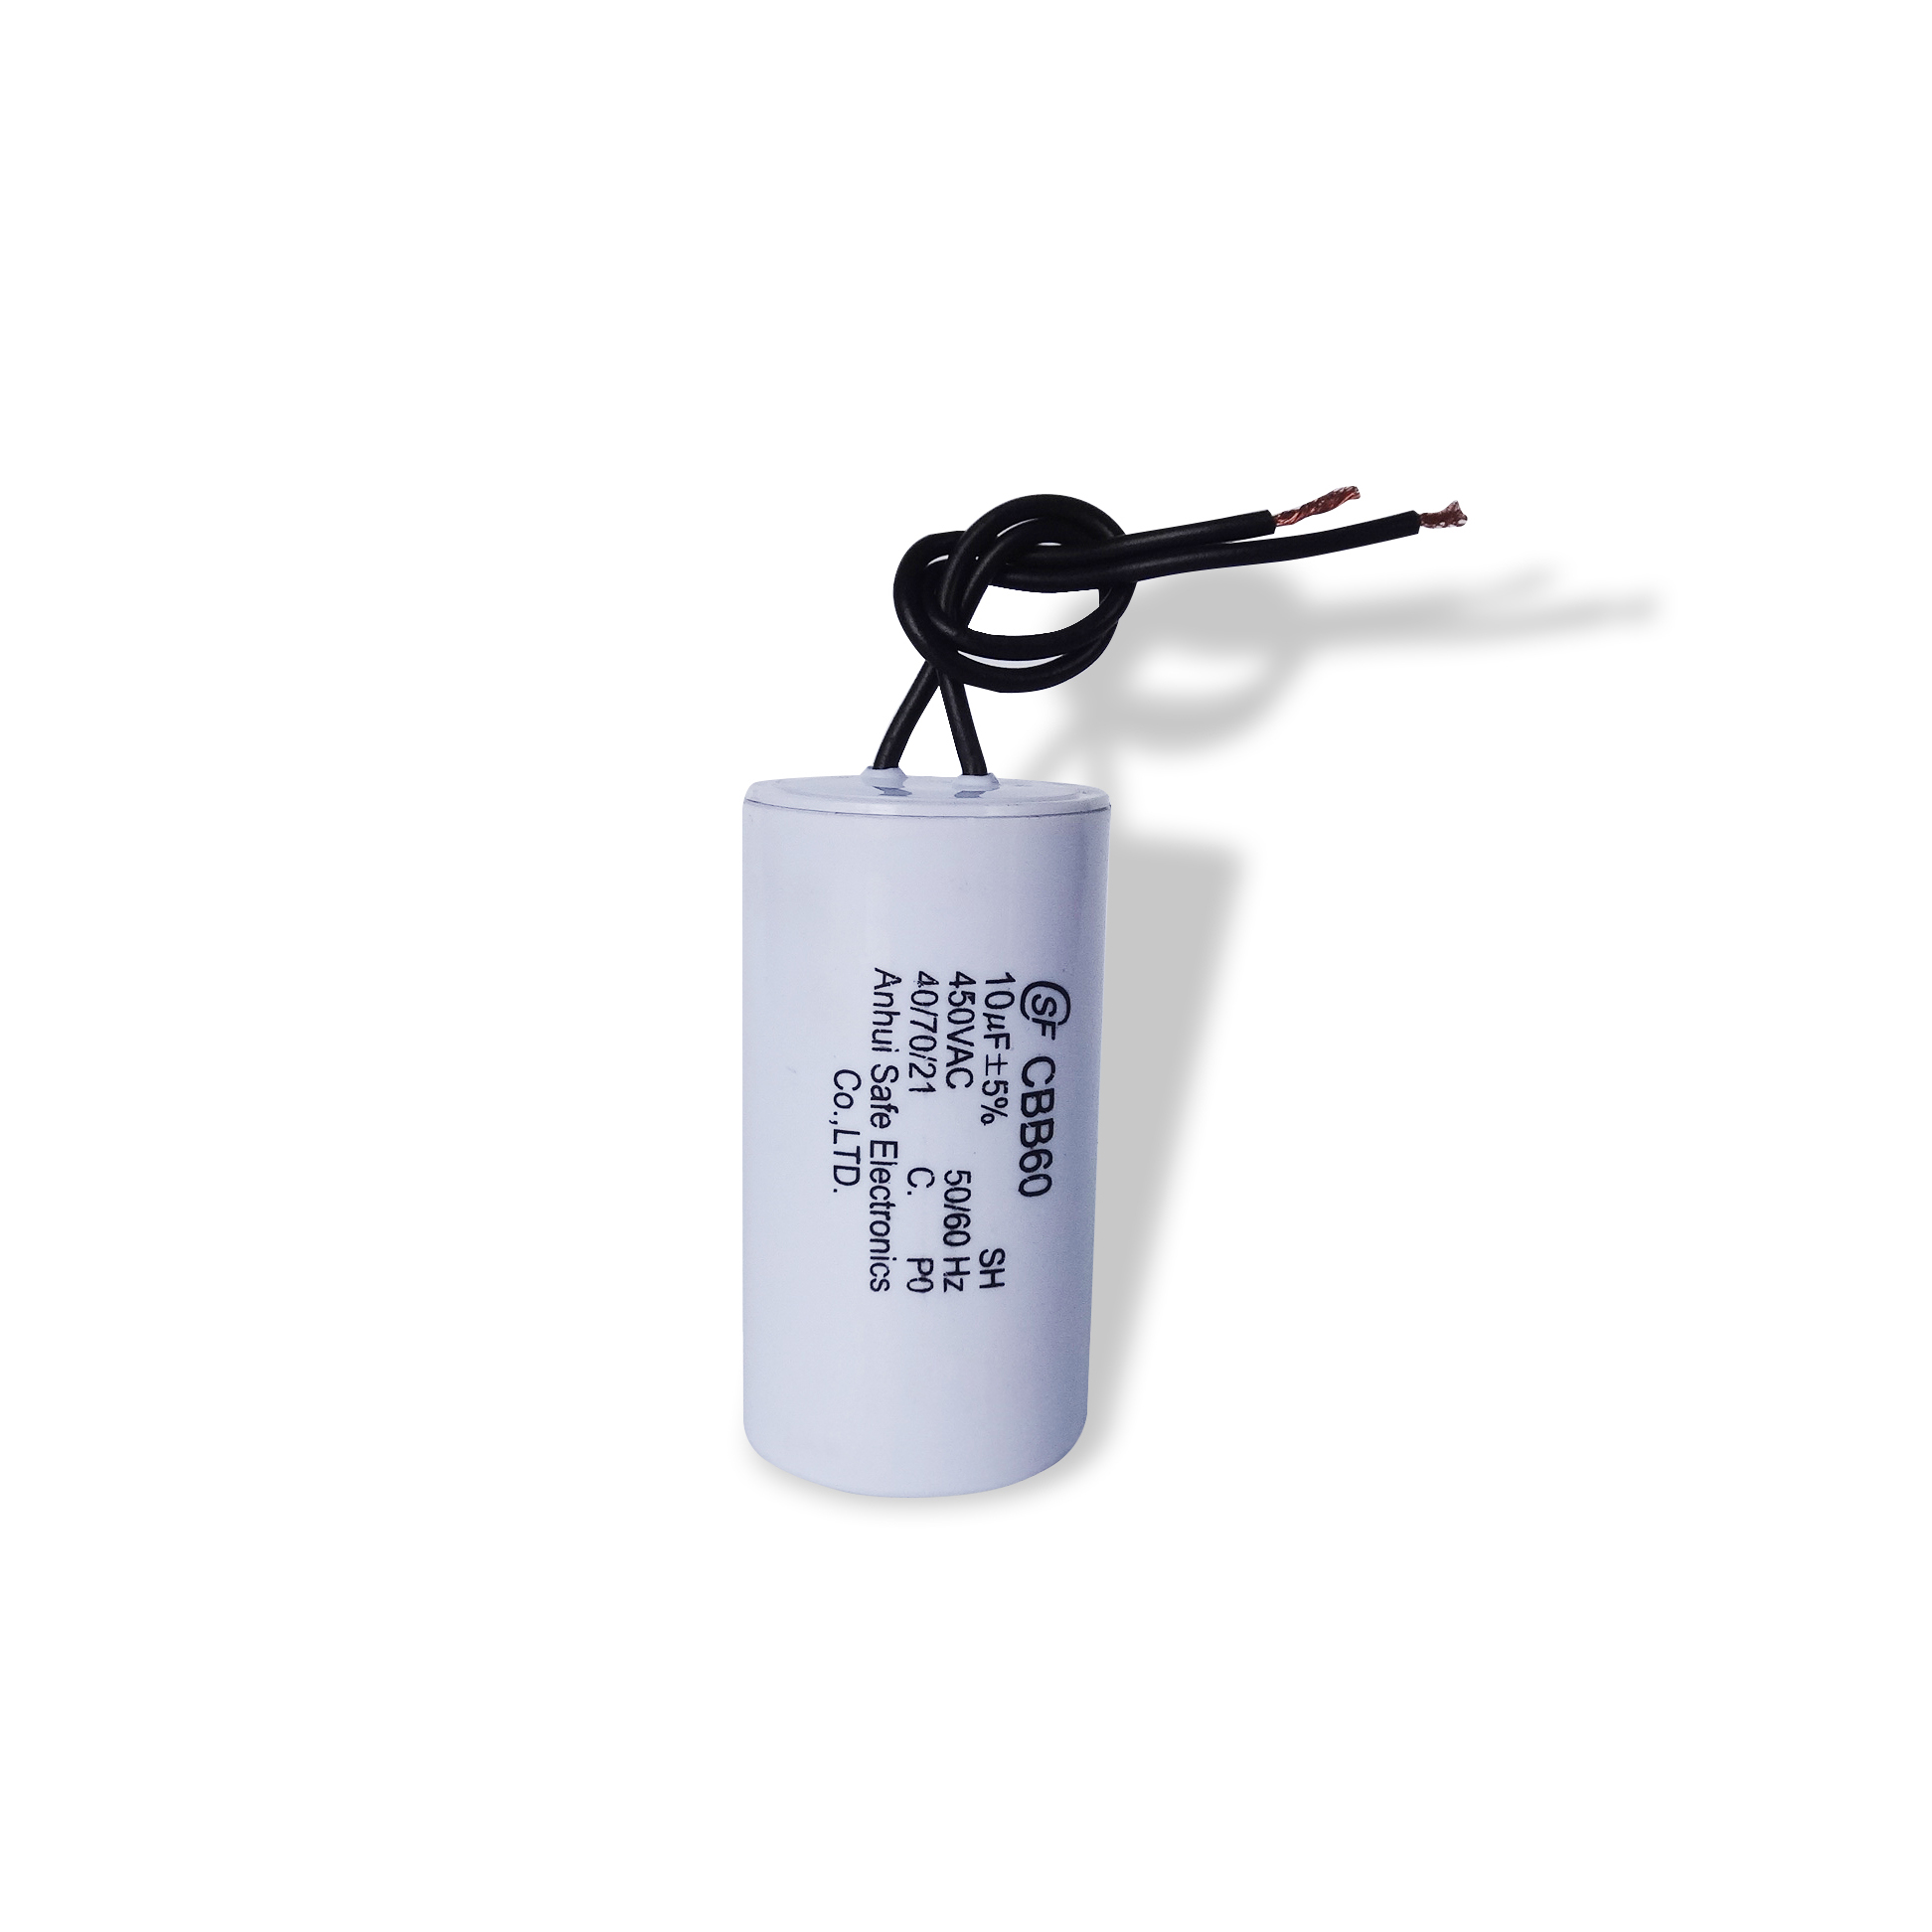 China Supplier White Plastic Shell Motor Capacitor Cbb60 for Water Pump